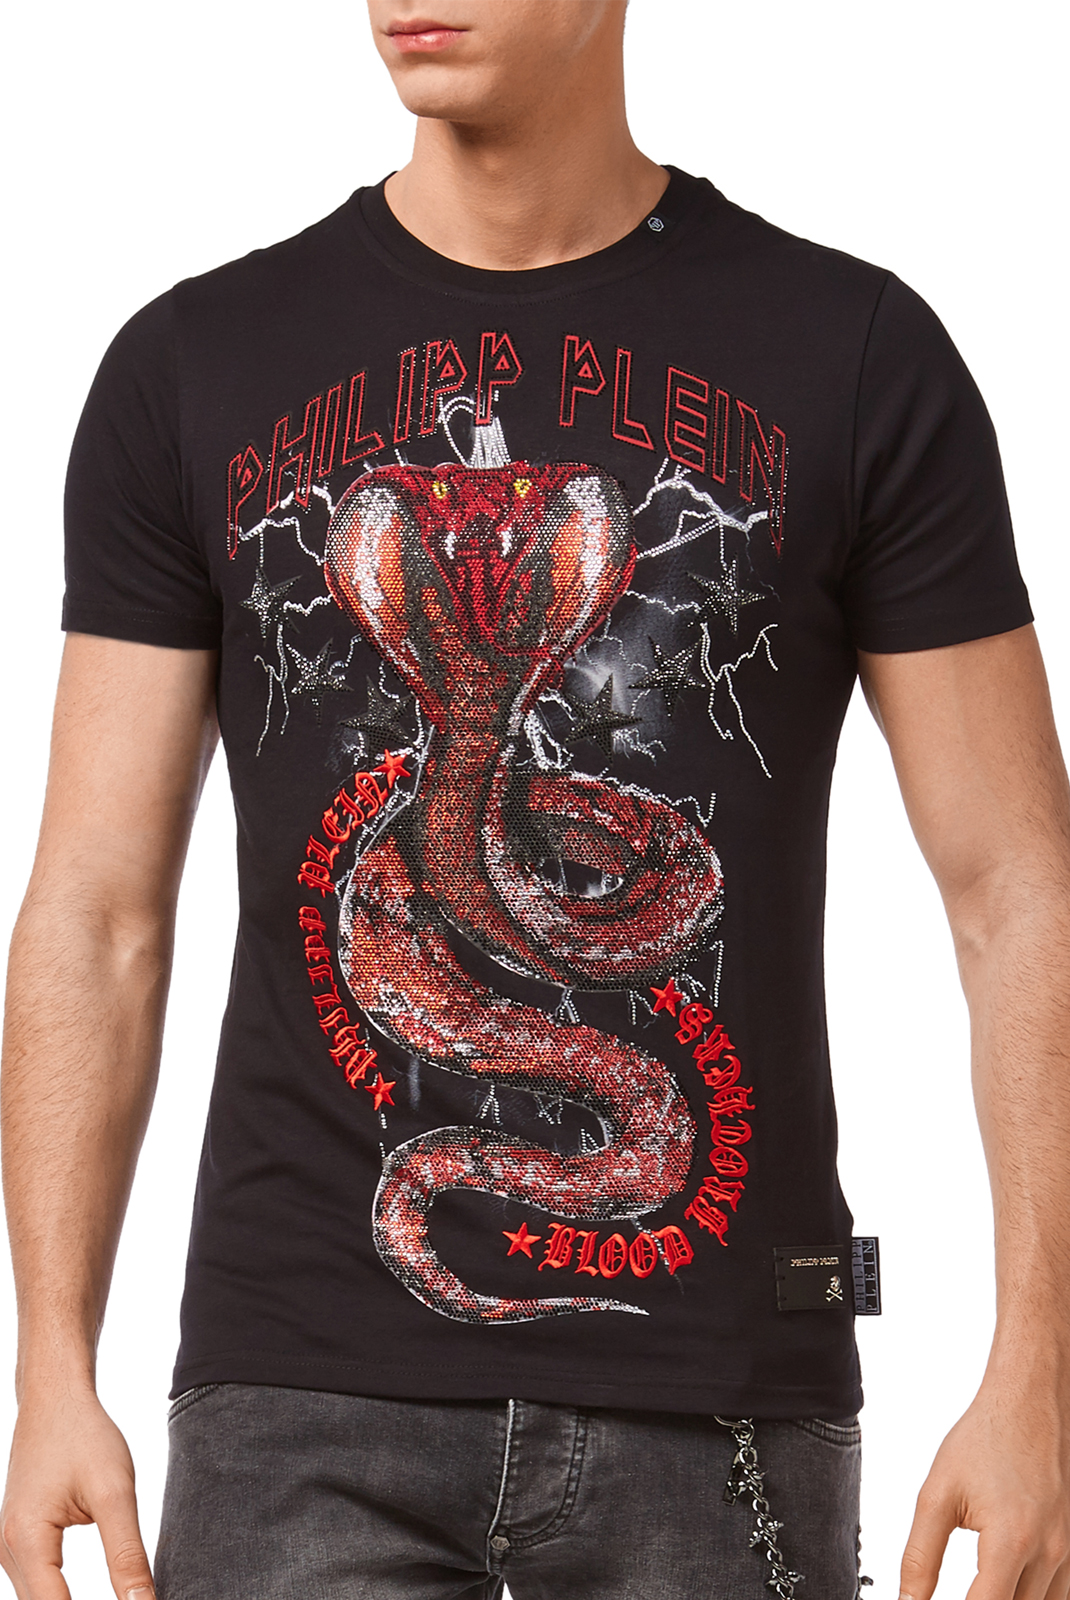 Tee-shirts  Philipp plein P18C MTK1943 PARTY ALL THE TIME 0213 BLACK/RED